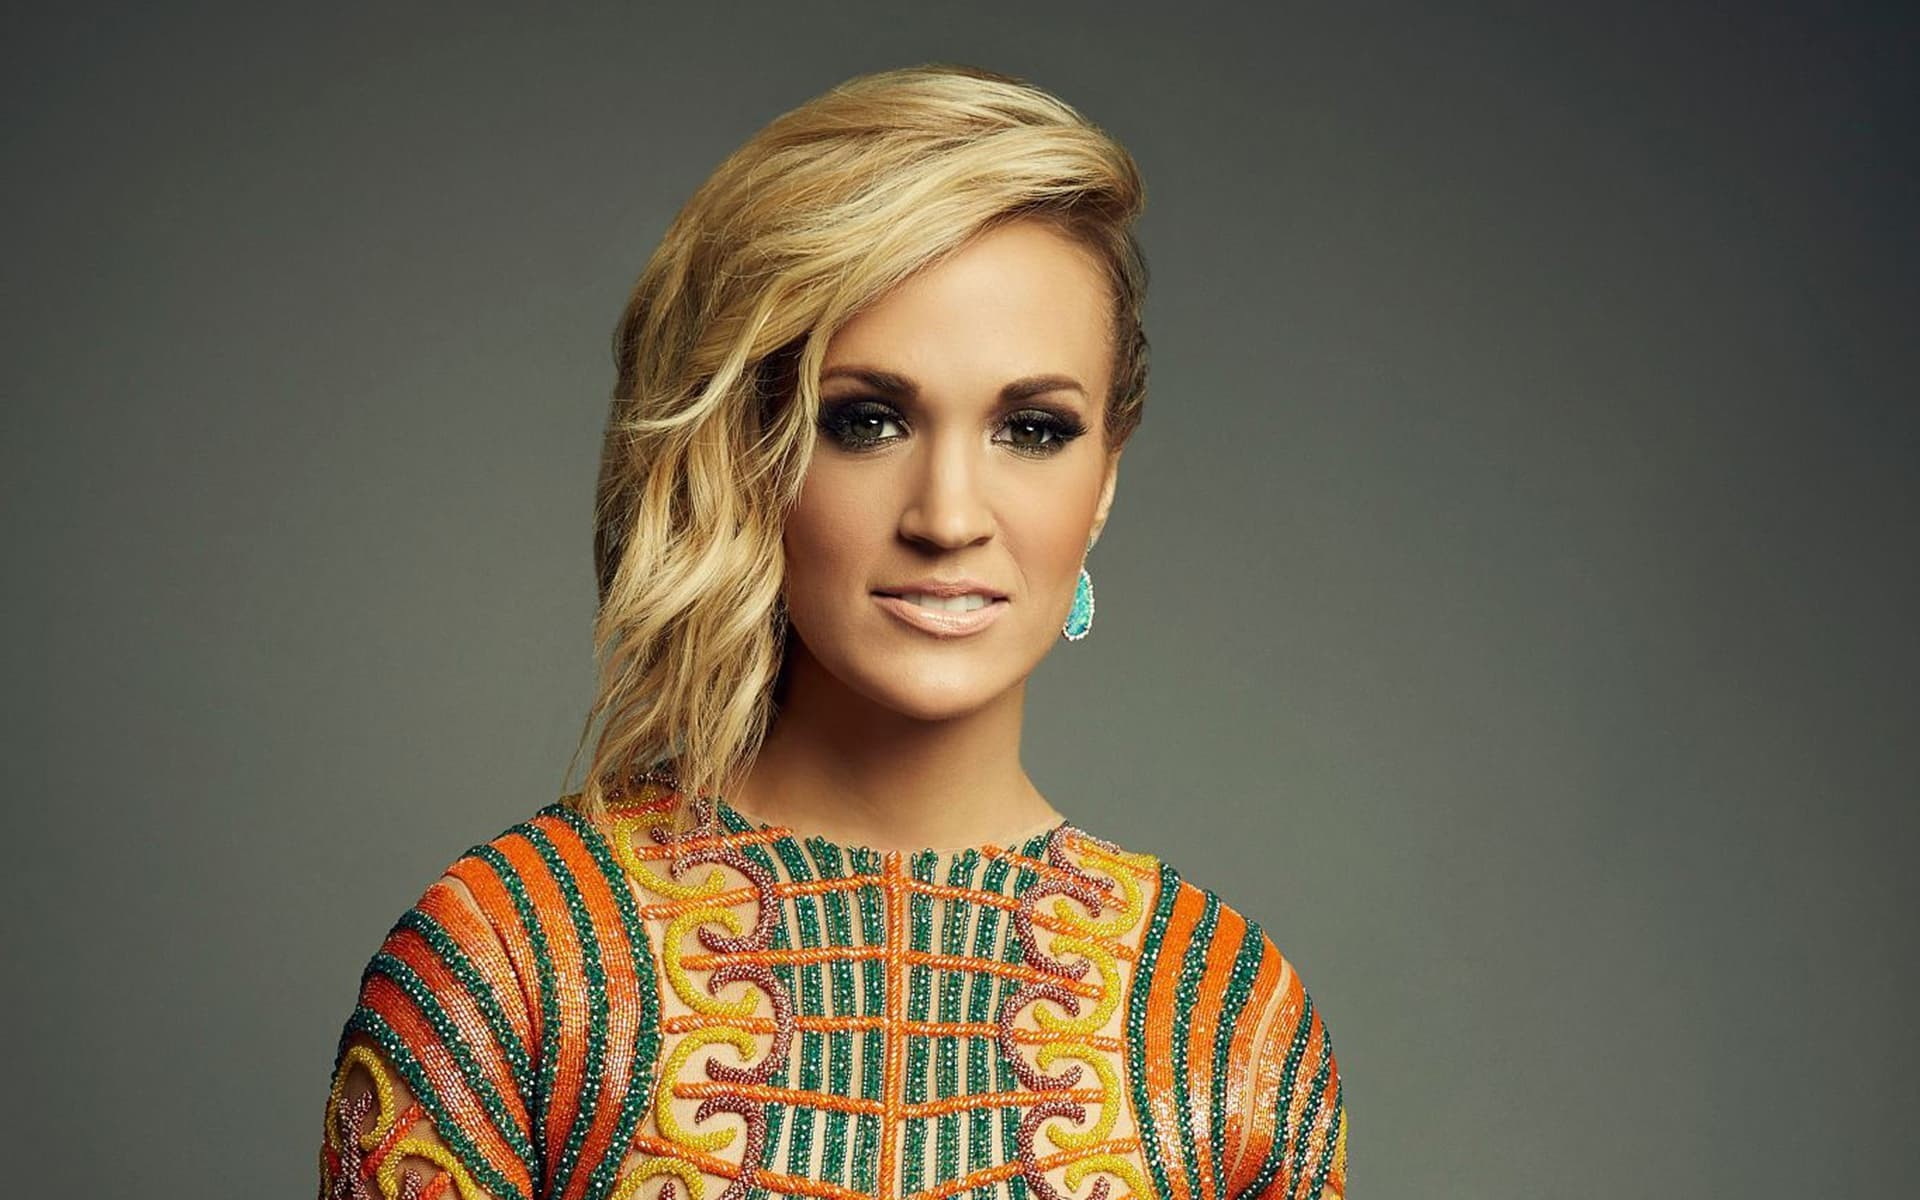 Listen to Carrie Underwood Radio free! Stream songs by Carrie Underwood amp similar artists plus get the latest info on Carrie Underwood!